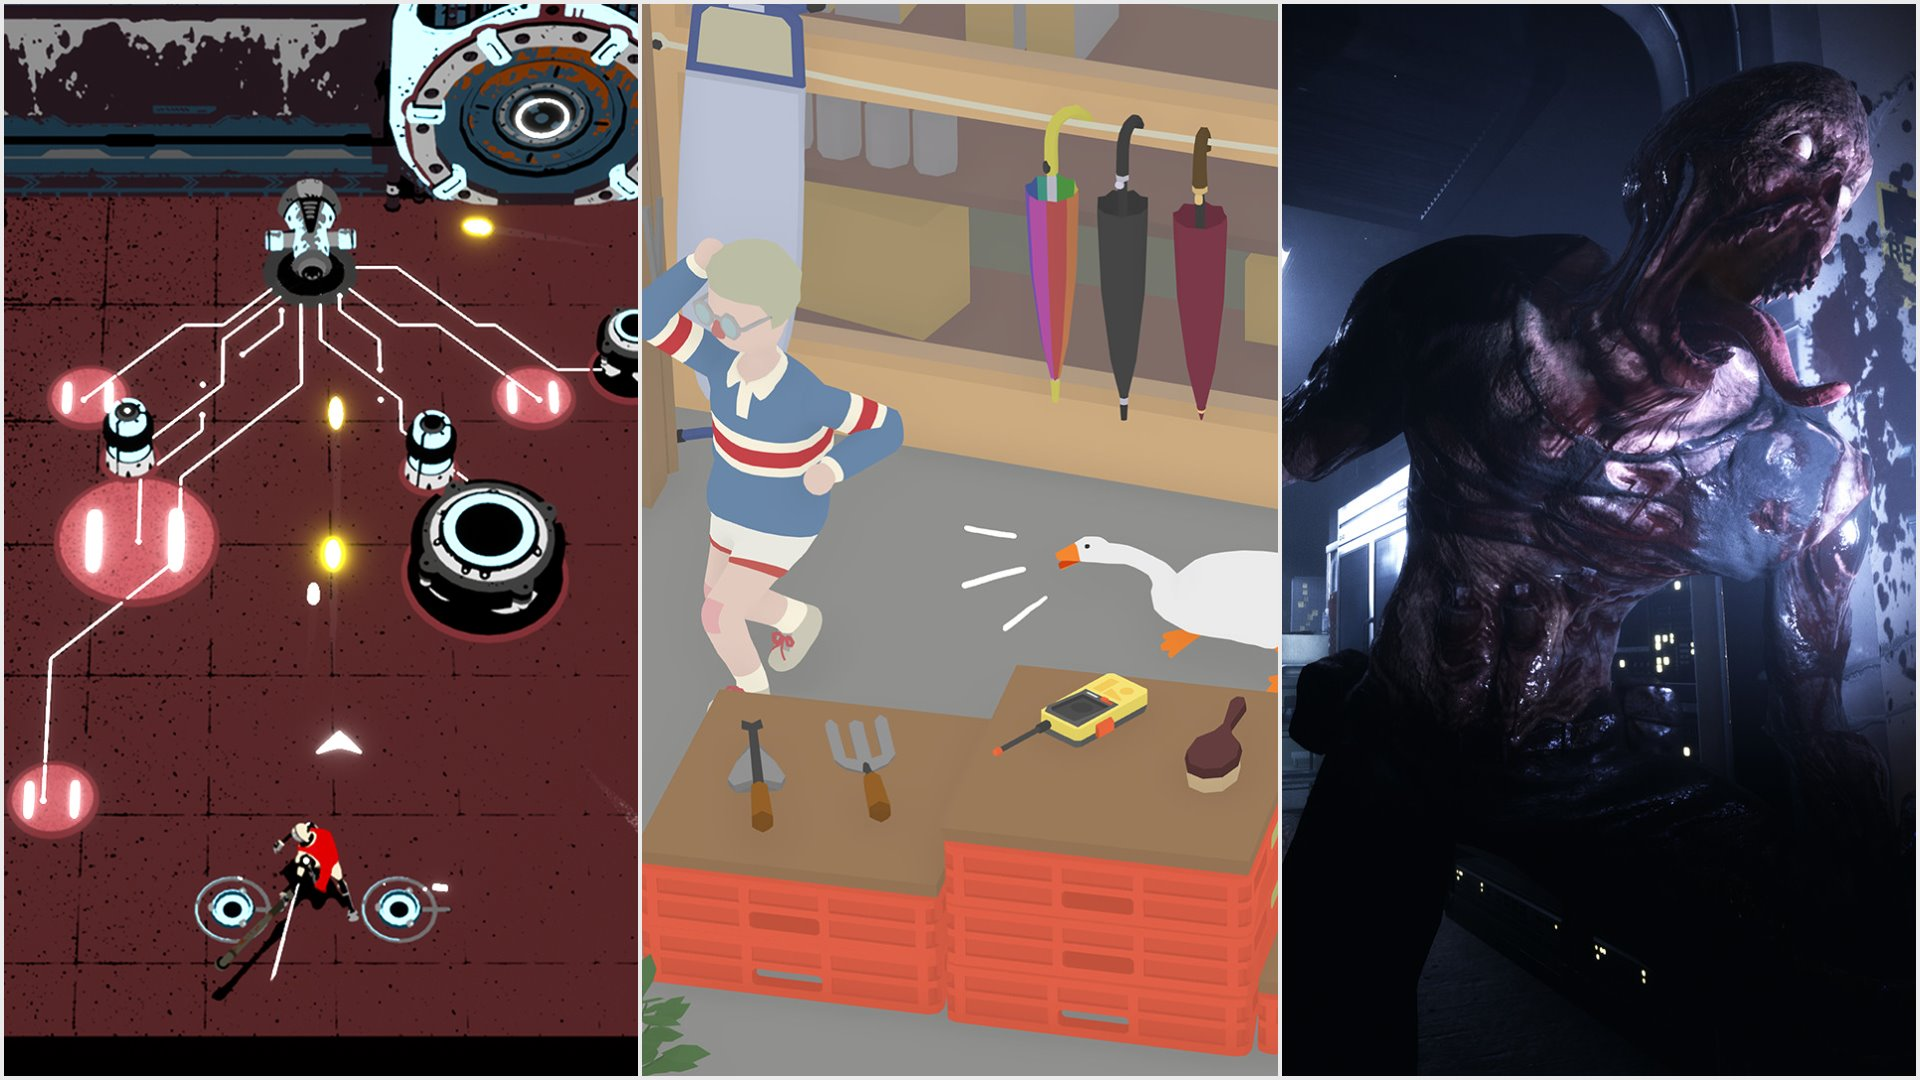 Top 5 Best Upcoming Indie Games of September 2019